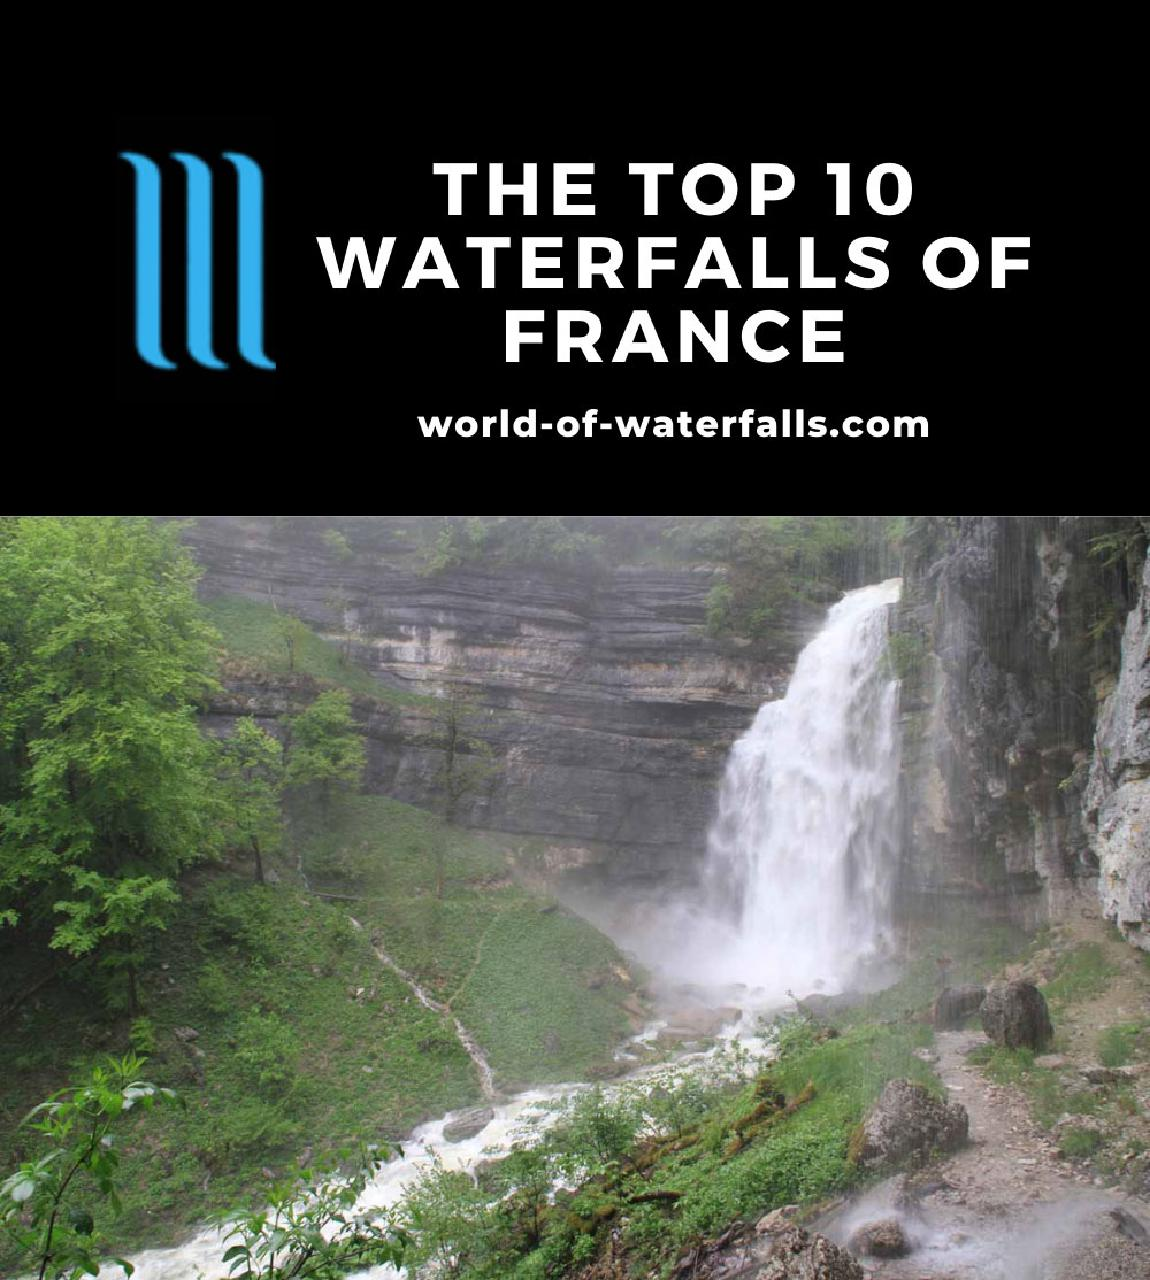 The Top 10 Waterfalls of France